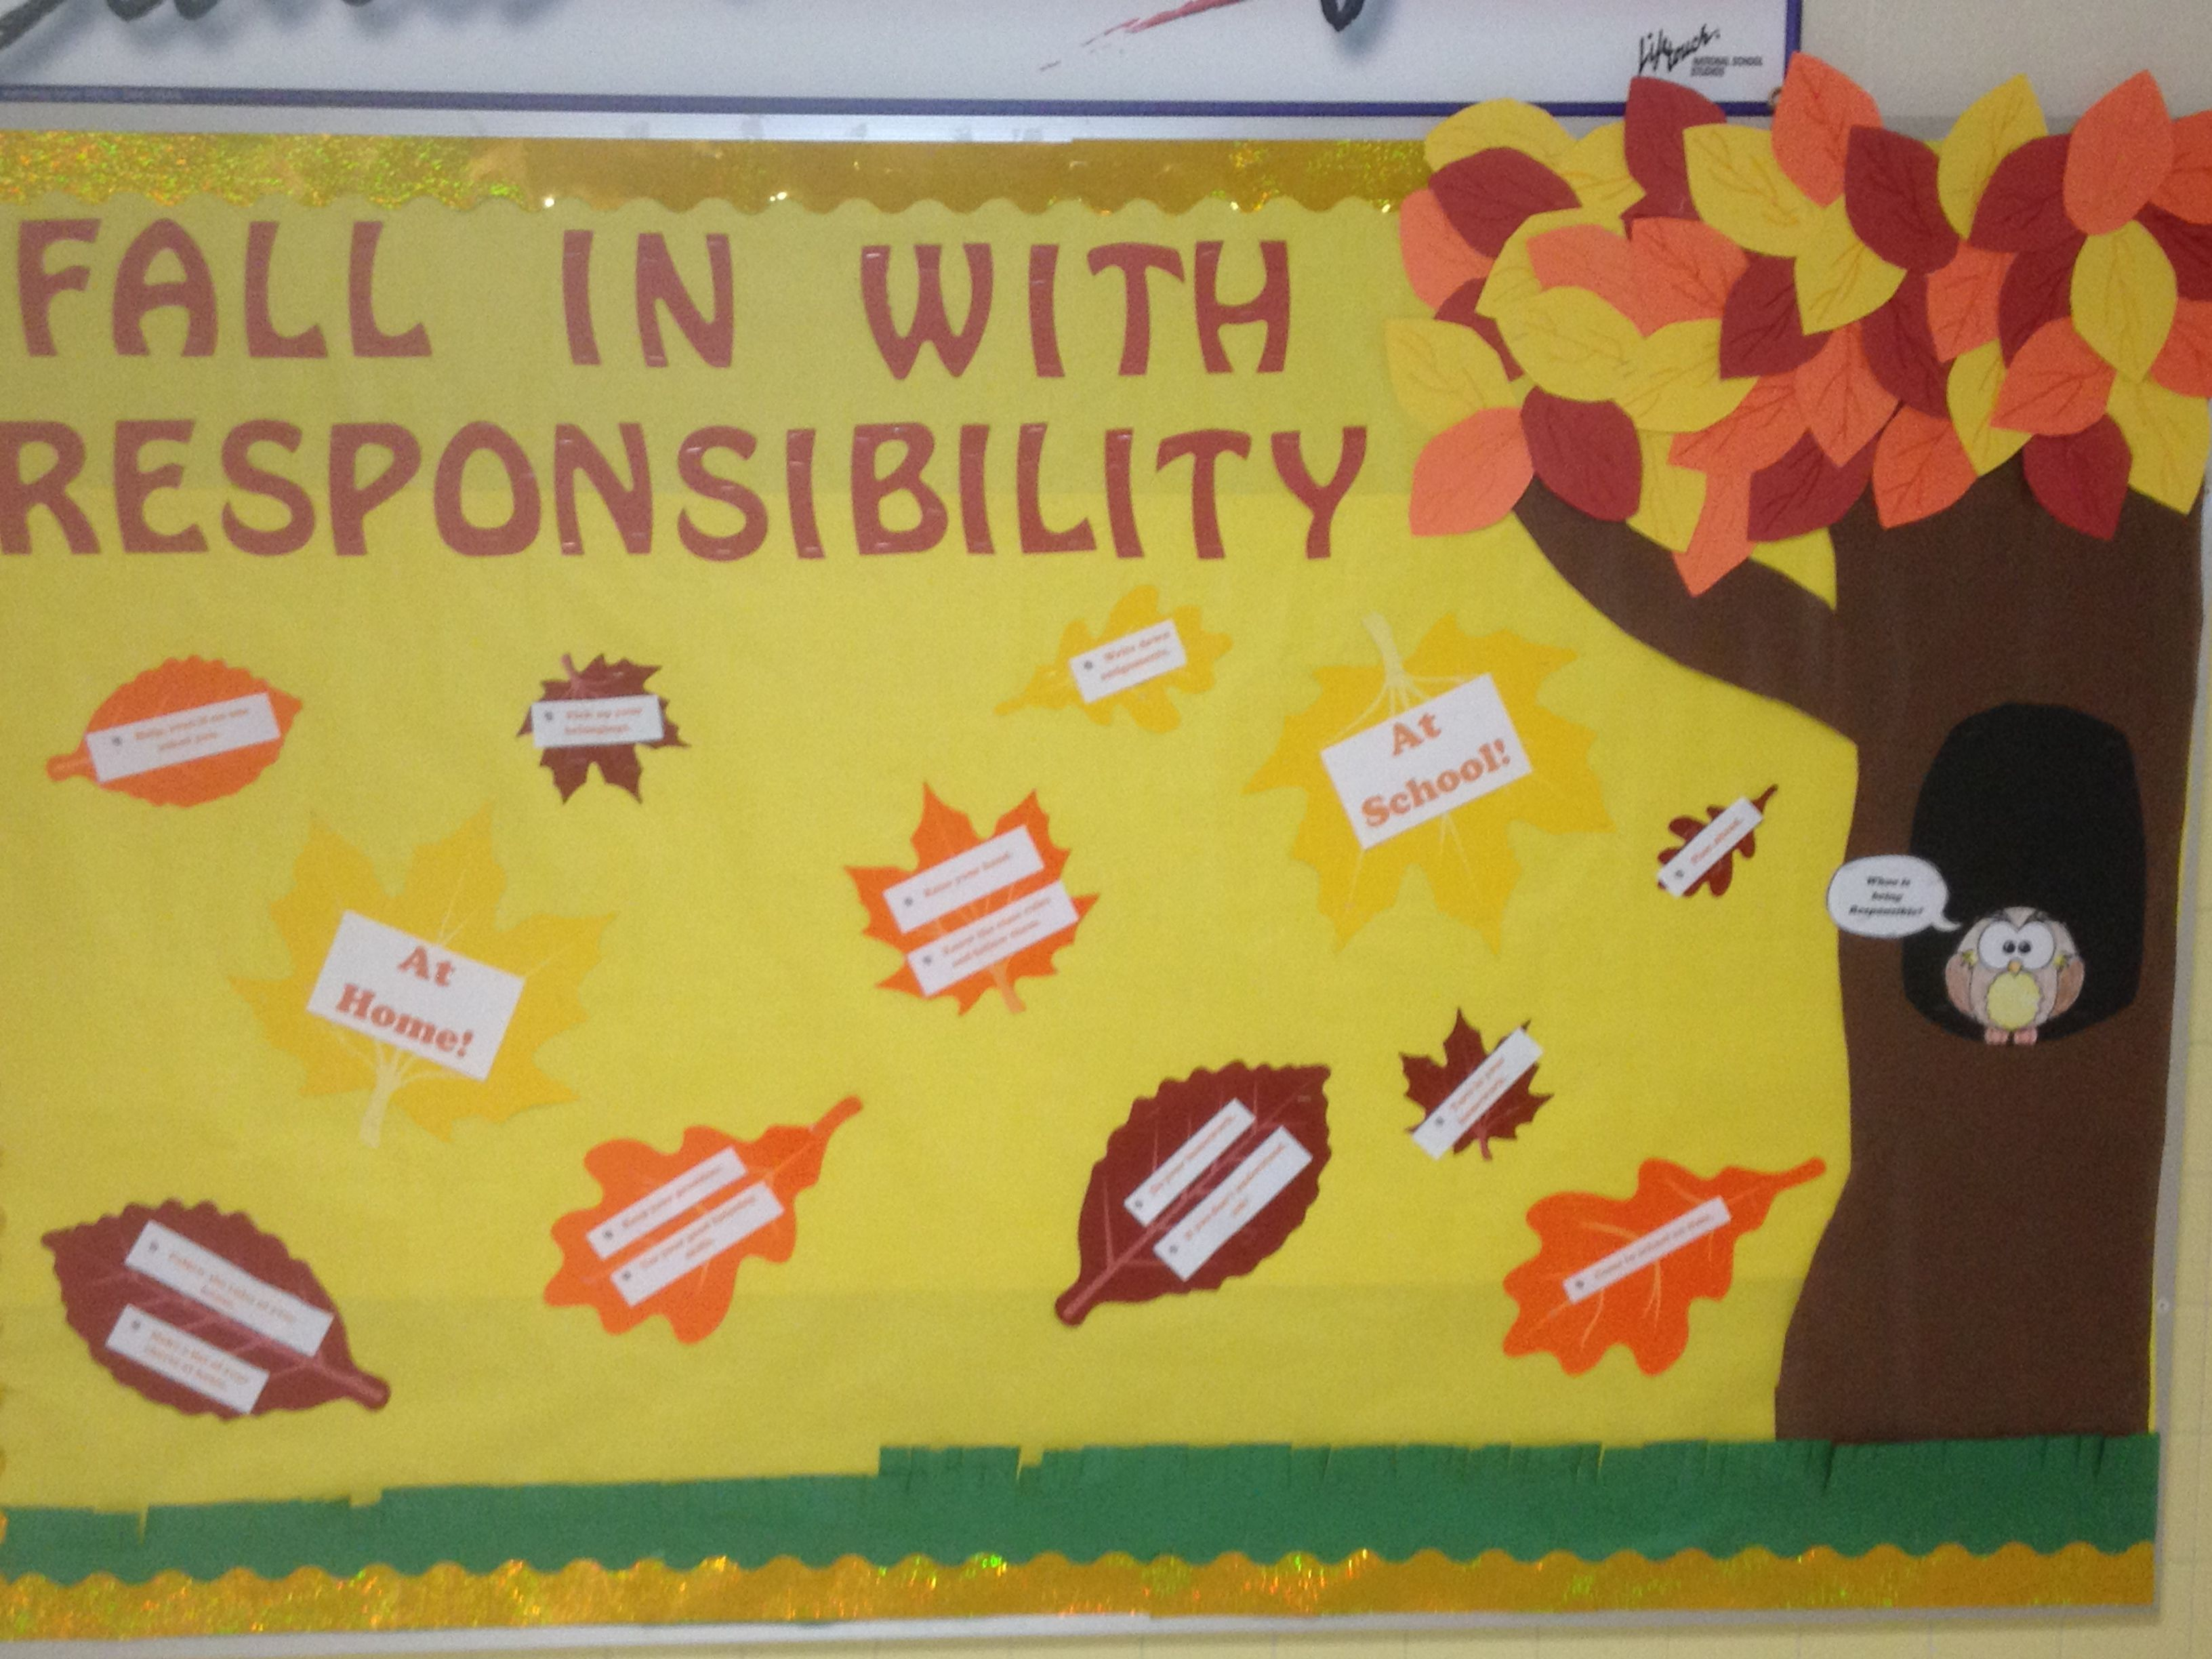 The October Trait Is Responsibility The Board Shares Ways